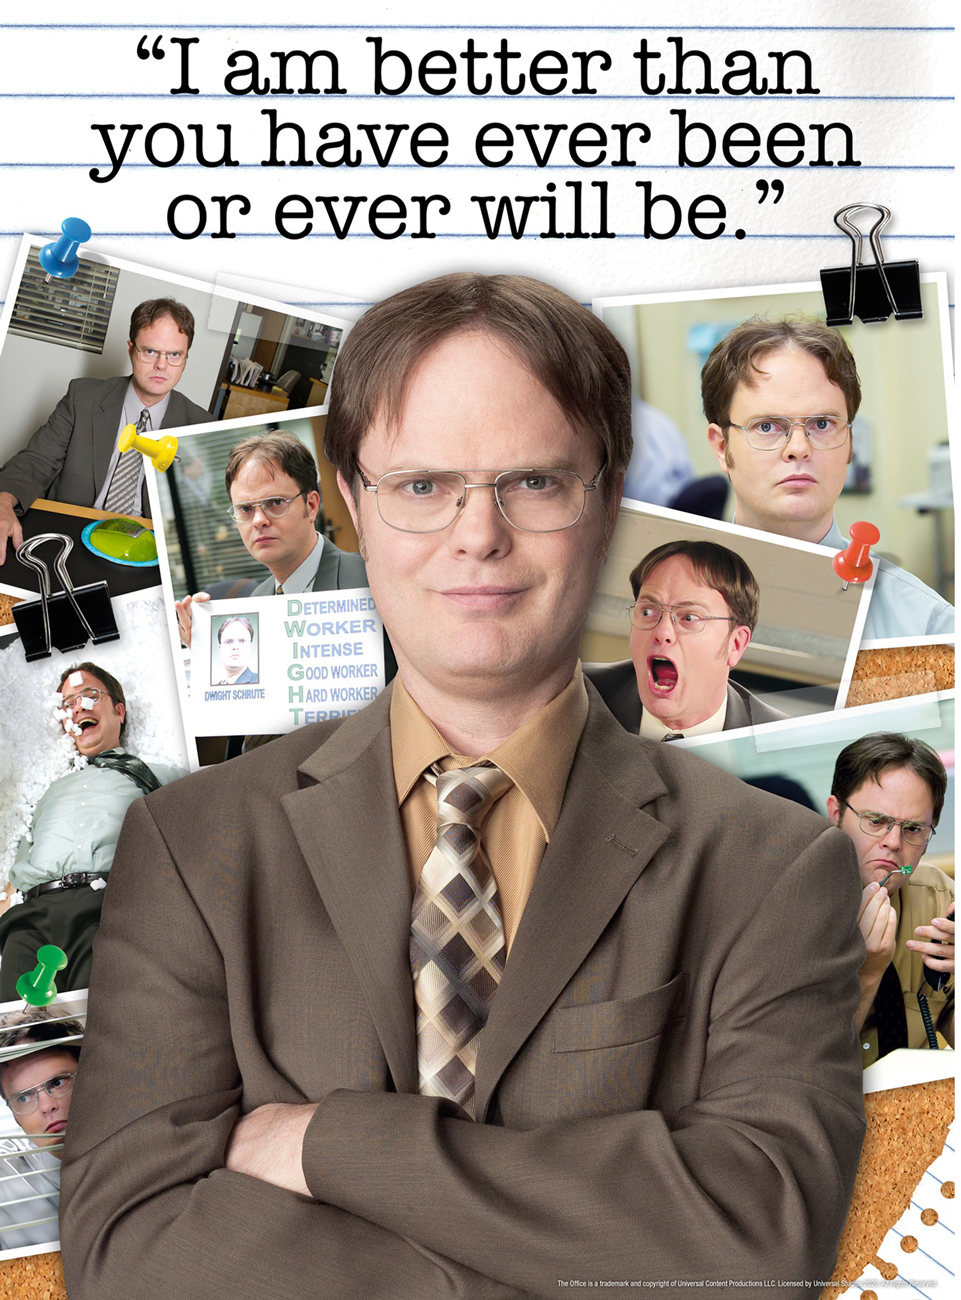 The Office Dwight Schrute Quote Movies / Books / TV Jigsaw Puzzle